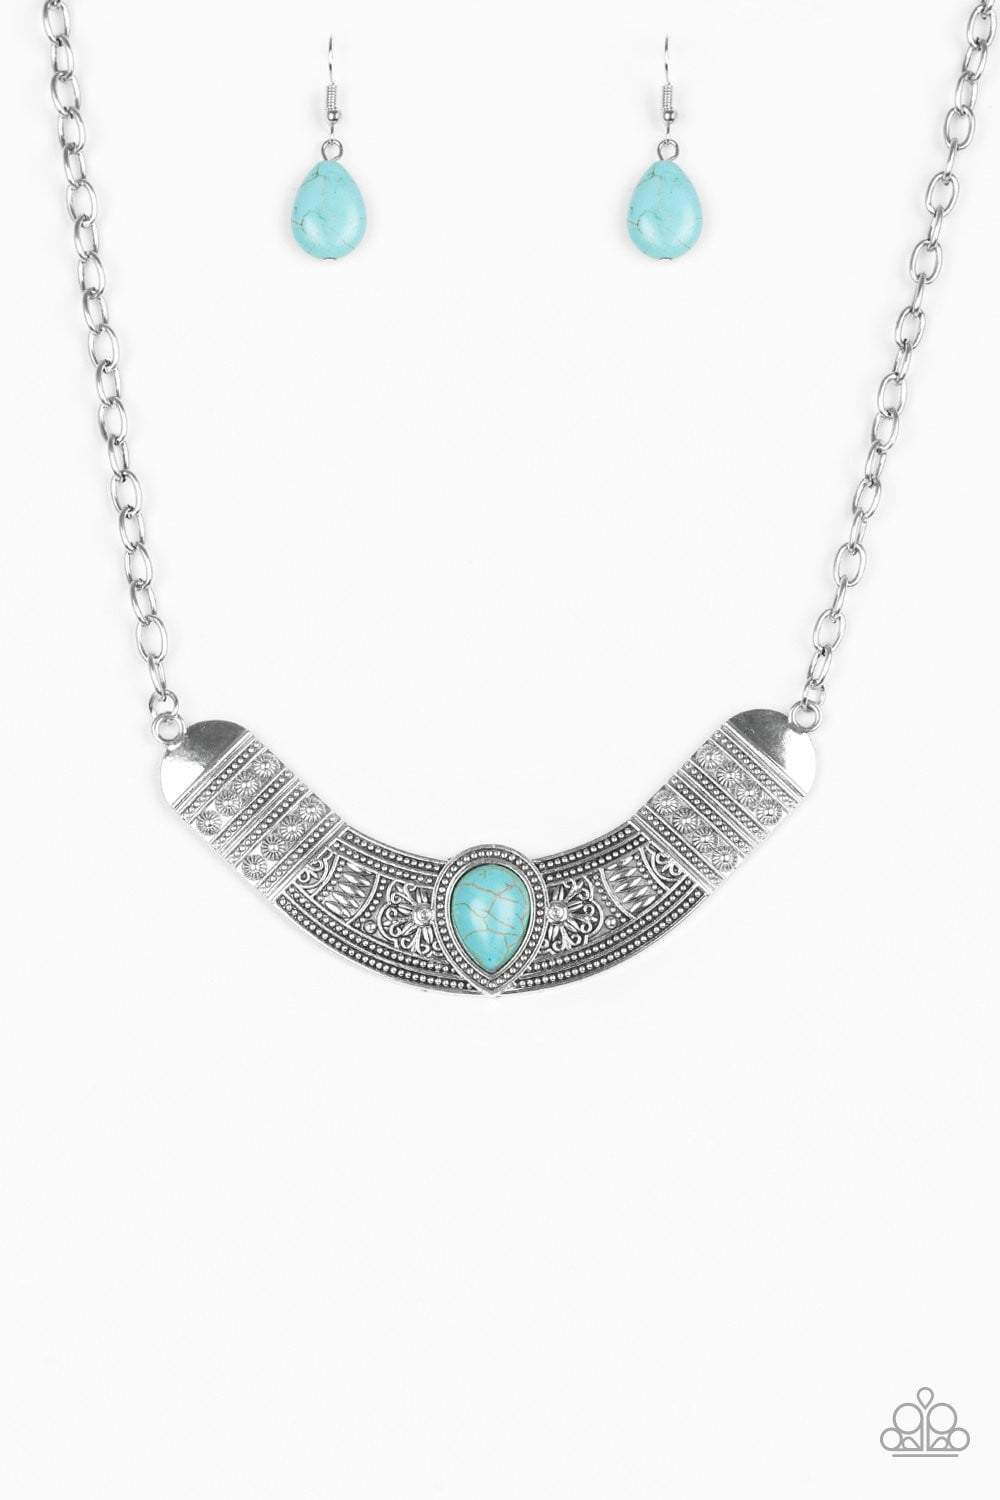 Paparazzi Very Venturous - Embossed Silver Crescent Turquoise Teardrop Stone Necklace - Bling It On Online